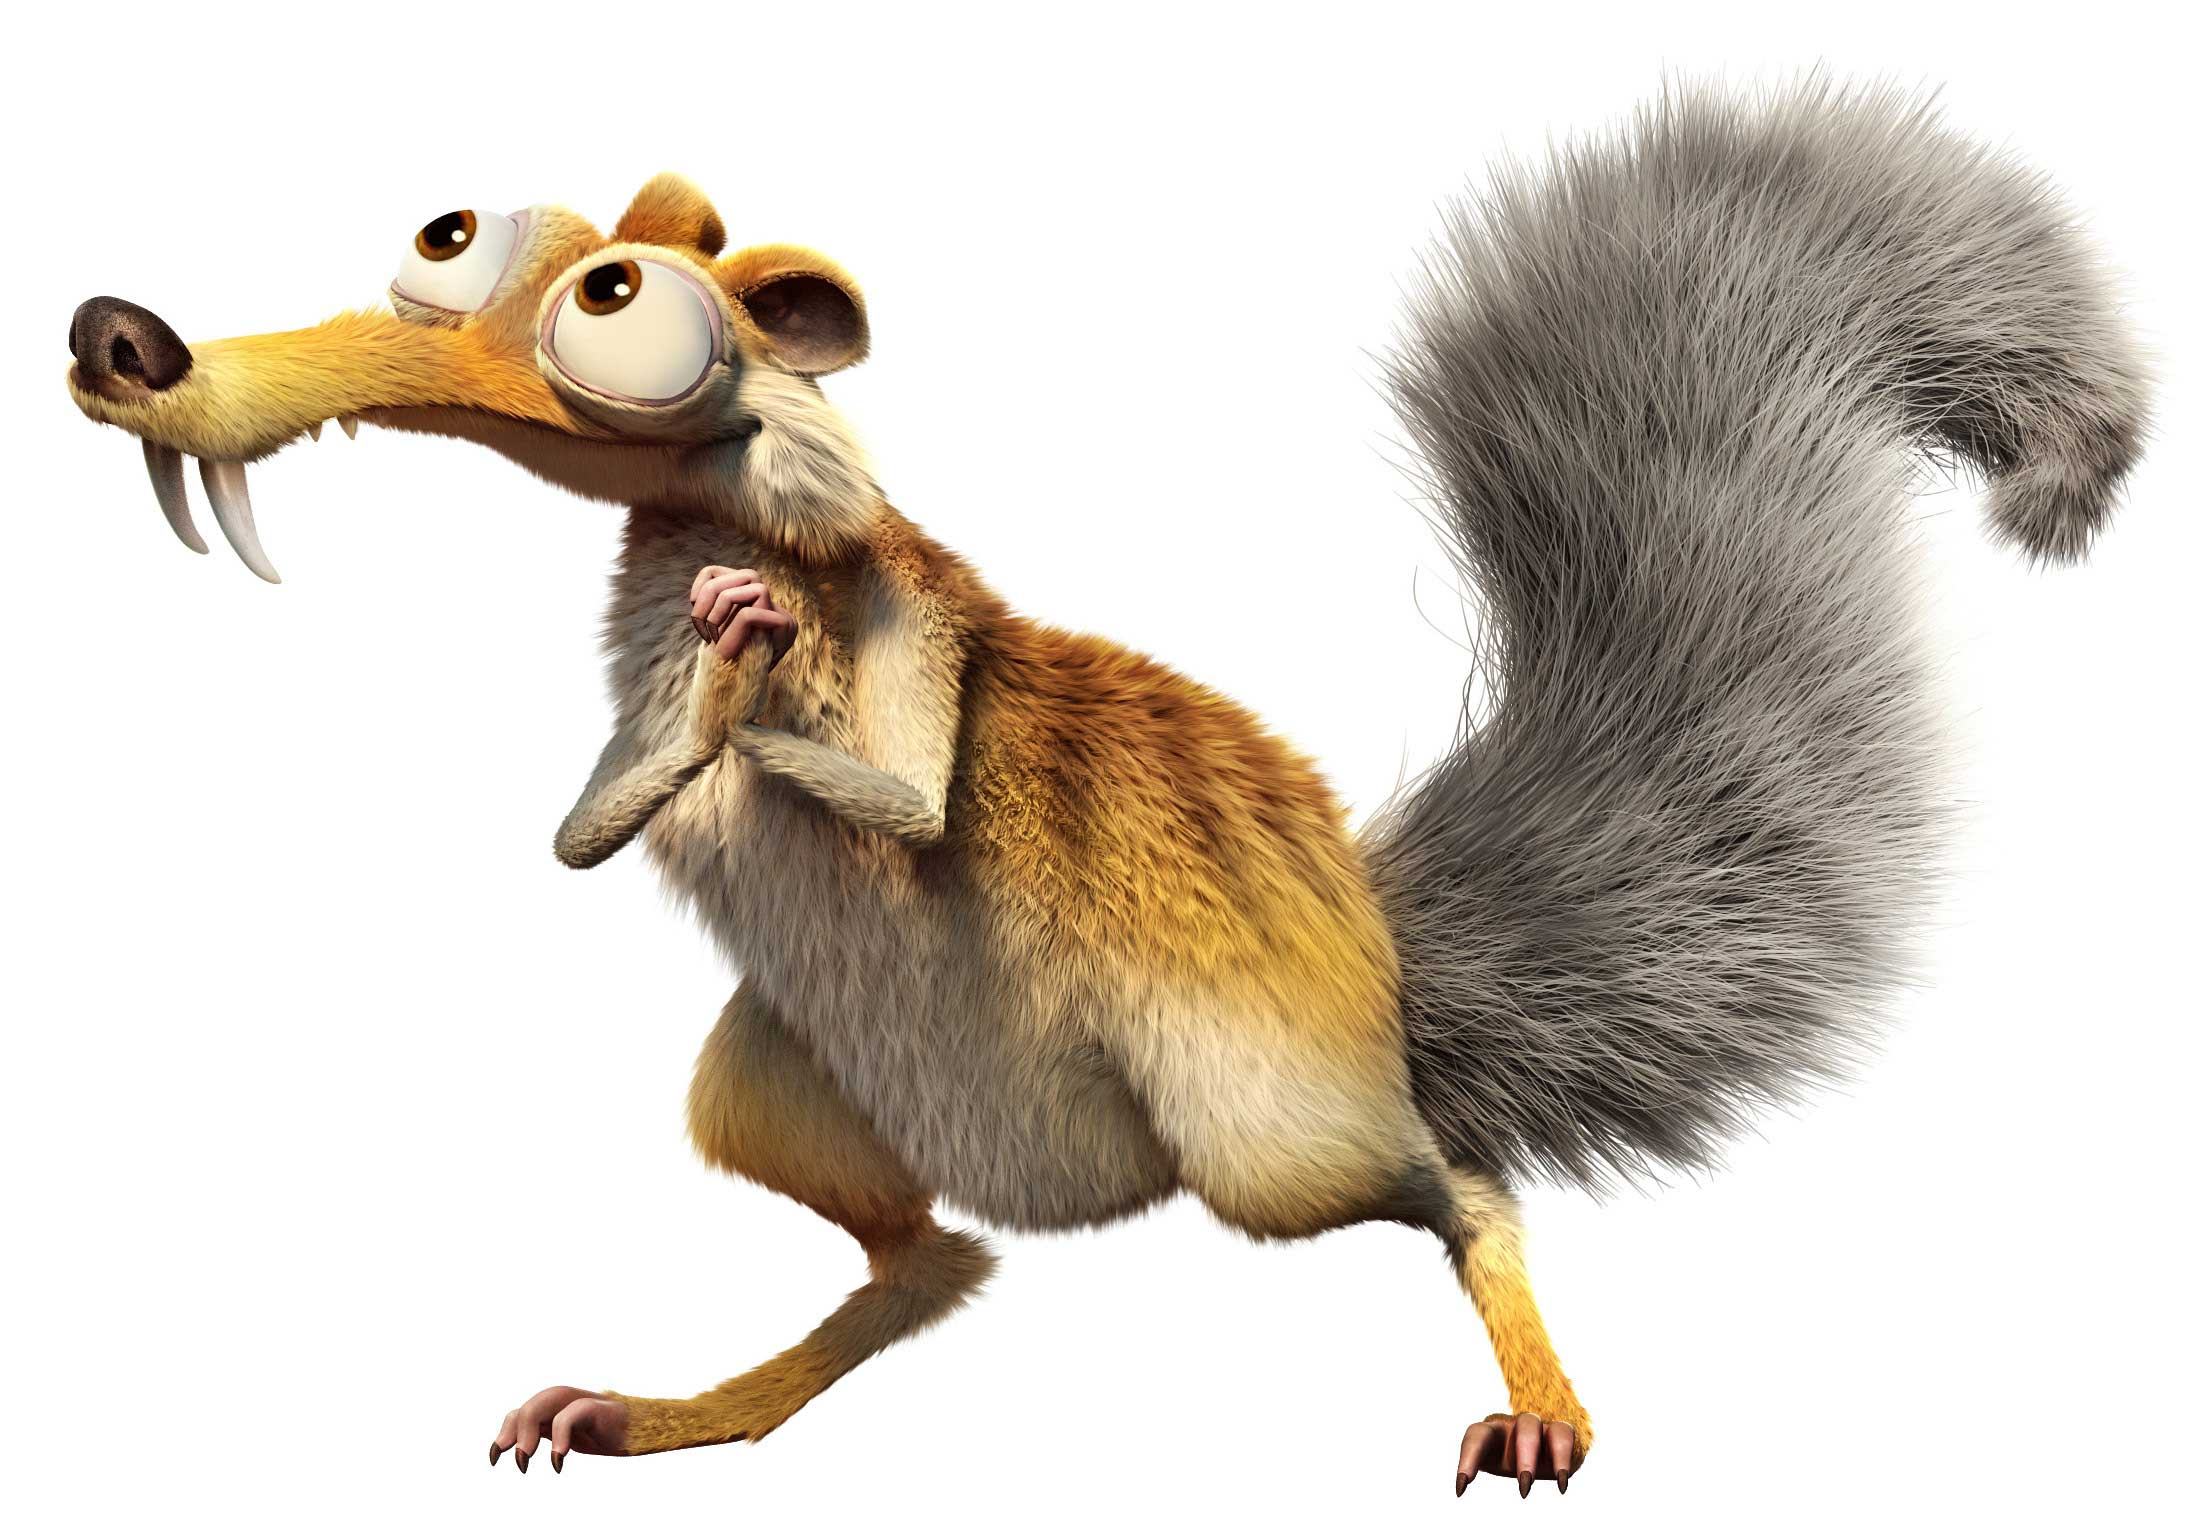 ice age 4 scratte - photo #15